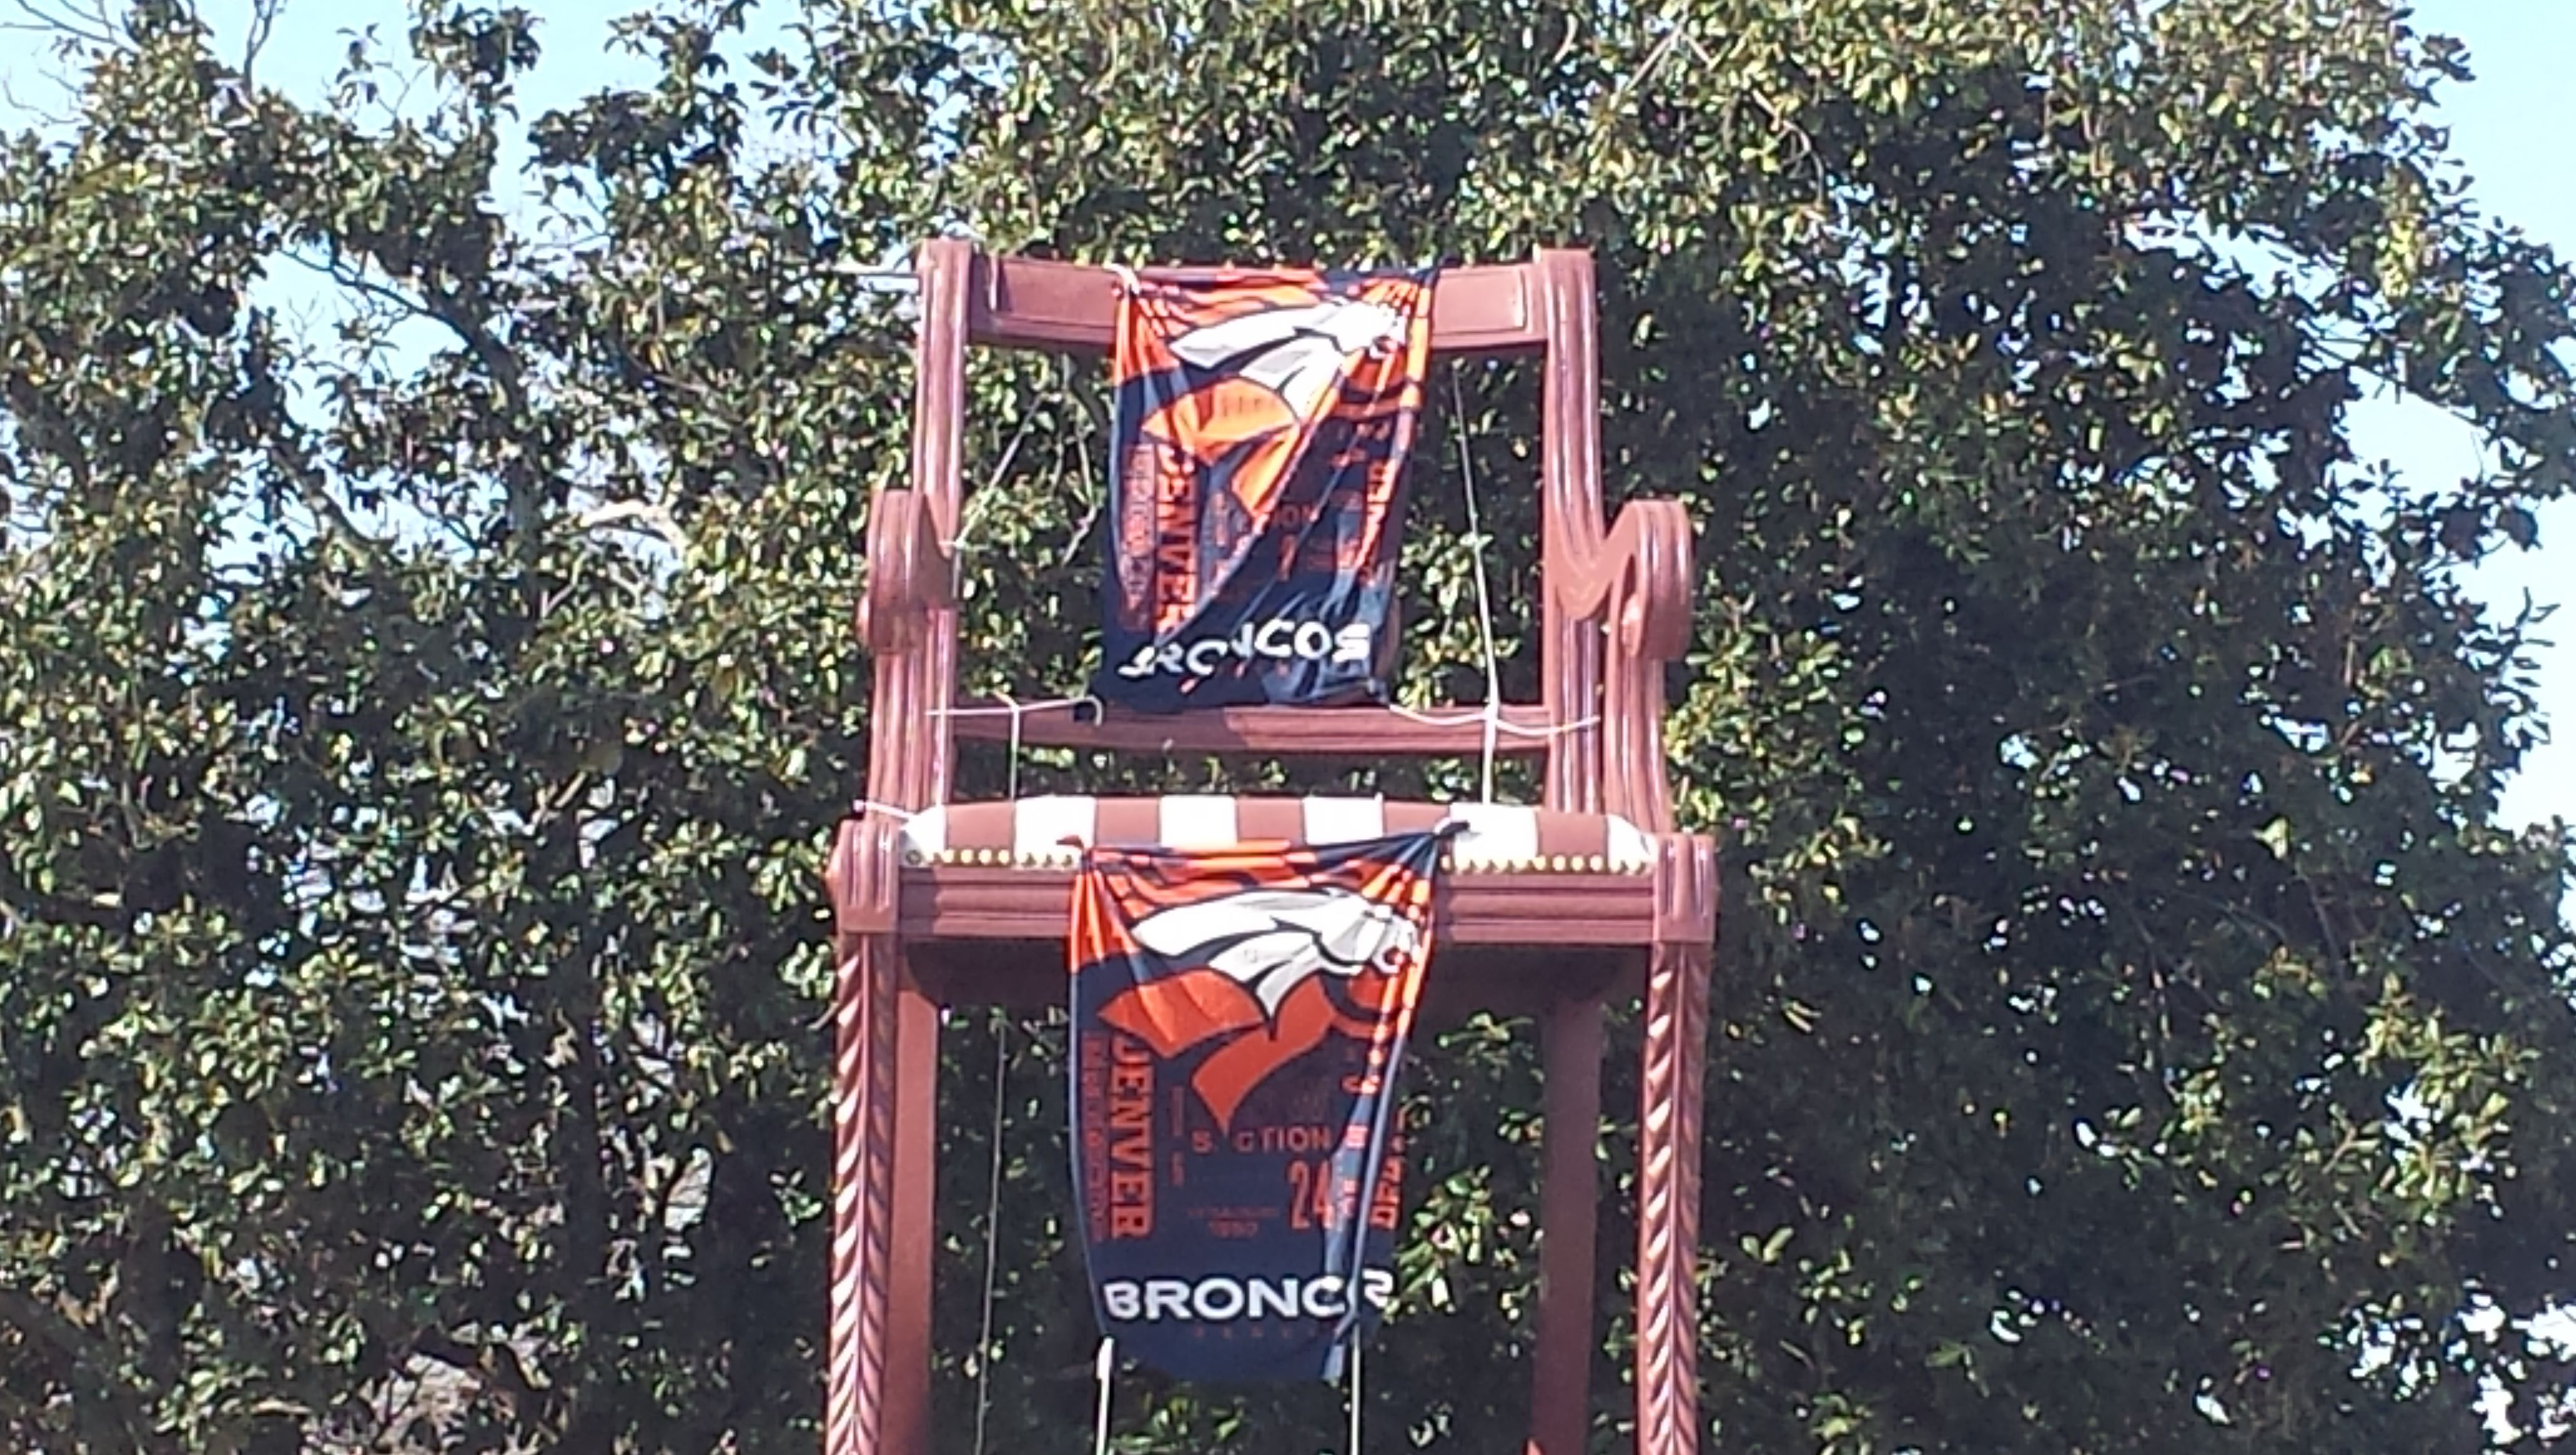 City of Thomasville keeps its word following the Panthers' loss to the Denver Broncos in Super Bowl 50. Thomasville is home of the world's largest chair. The bet was for the big chair to display Broncos banners if the Panthers lost. If the Panthers would have won, the World's Largest Rocking Chair in Penrose, Colorado would have had to be draped in Panthers gear.